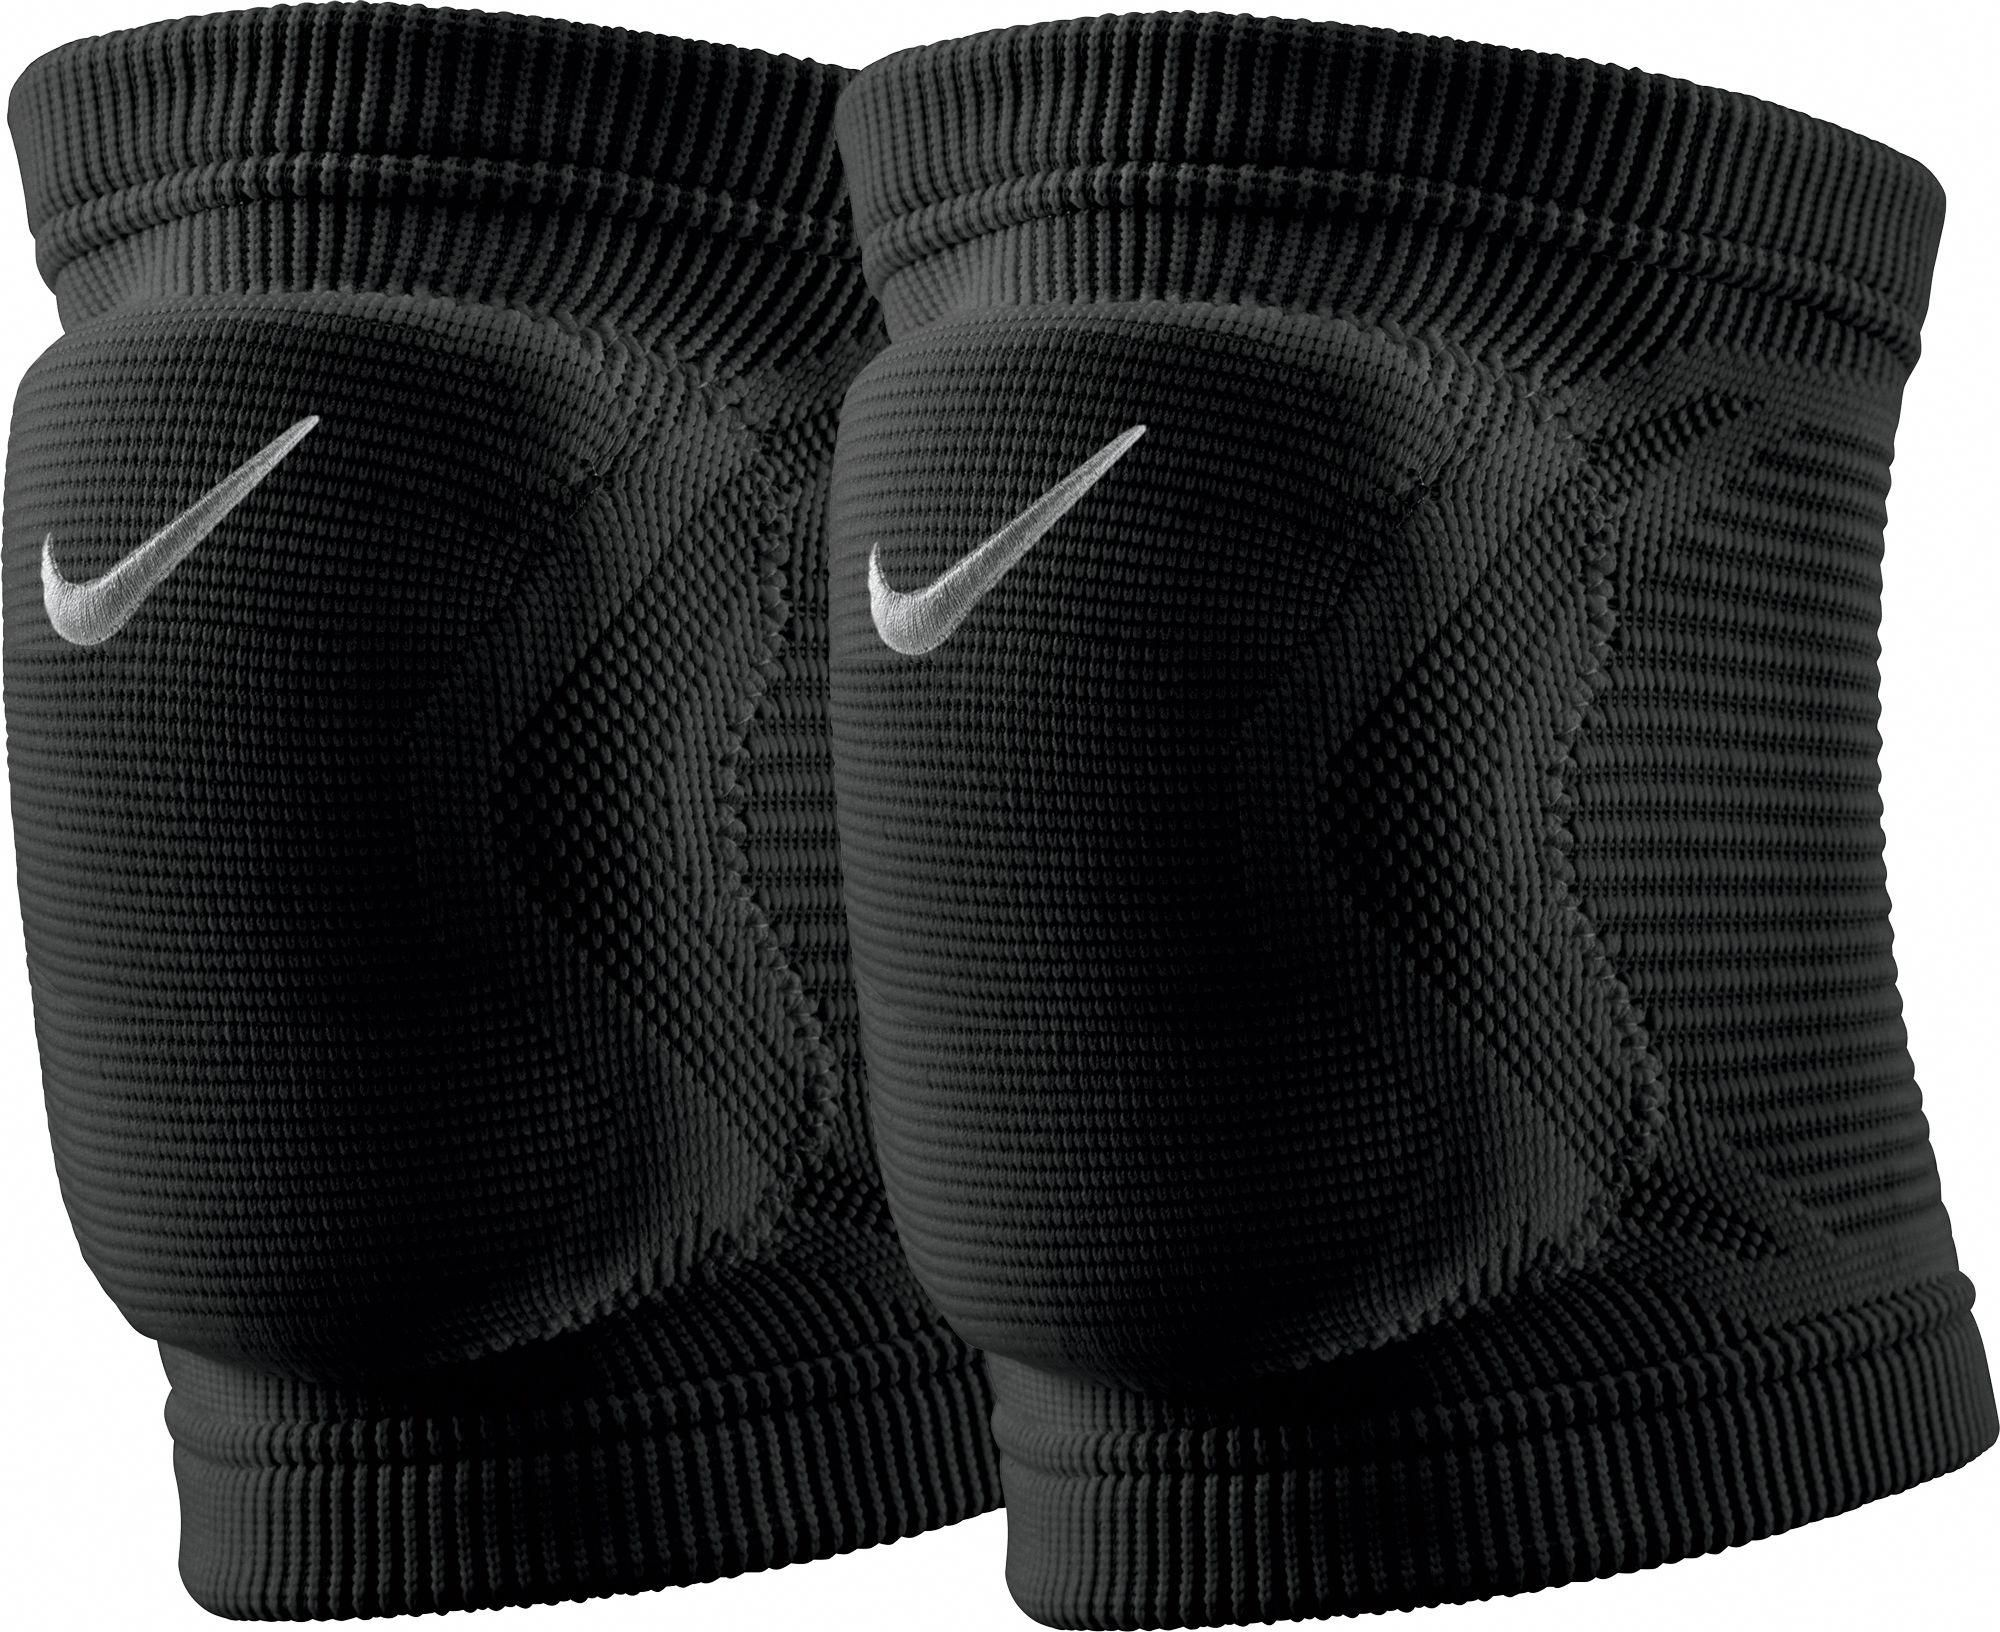 Nike Adult Vapor Volleyball Knee Pads Black Vaporizers Electronic Cigarettes Volleyball Knee Pads Volleyball Nike Vapor